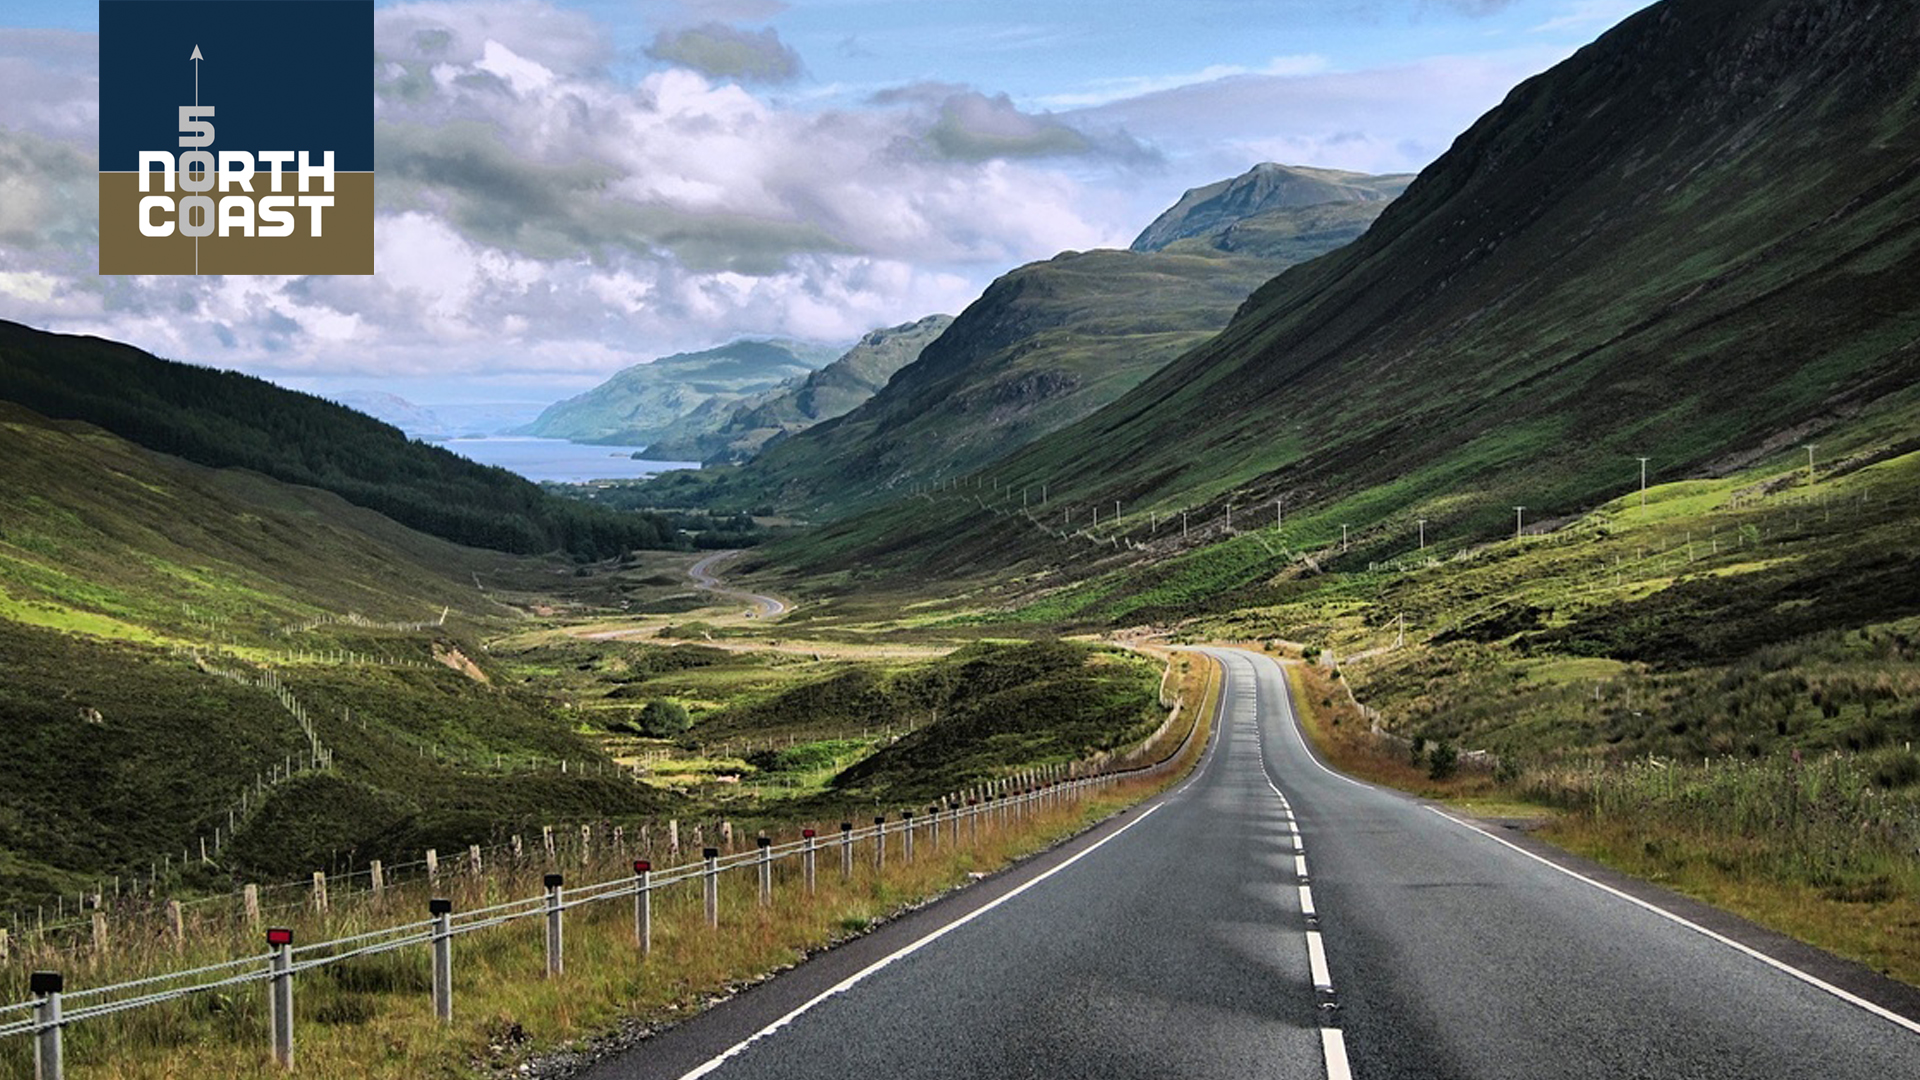 An essential element in any road trip is scenery and the North Coast 500 does not disappoint with views like this drive through Glen Docherty in Wester Ross.